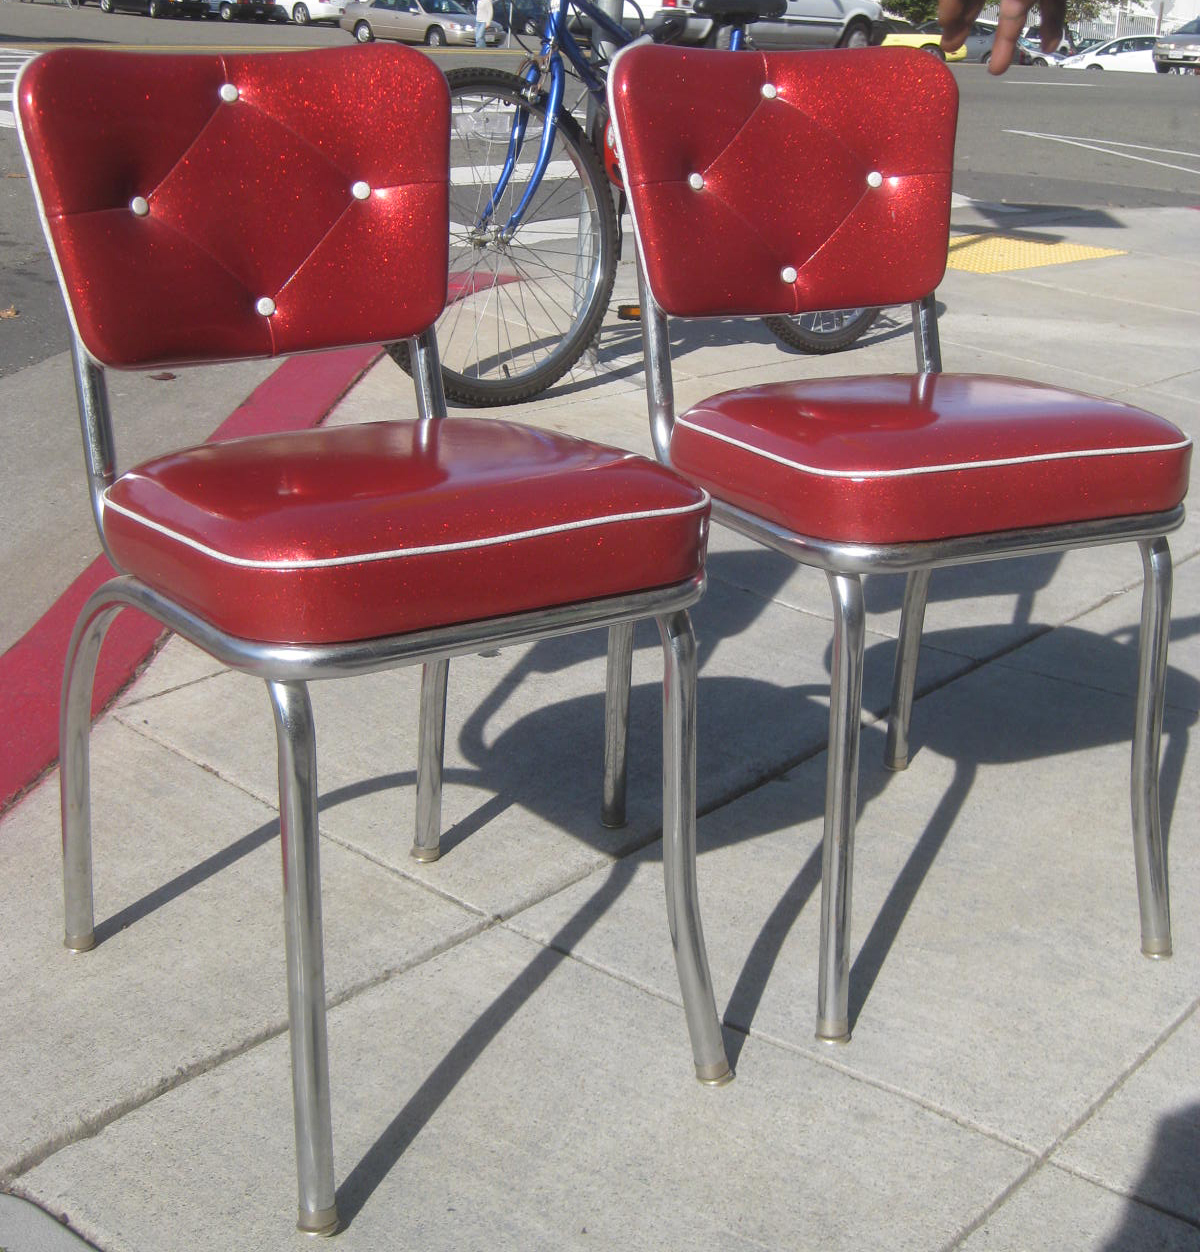 uhuru furniture collectibles sold two retro red